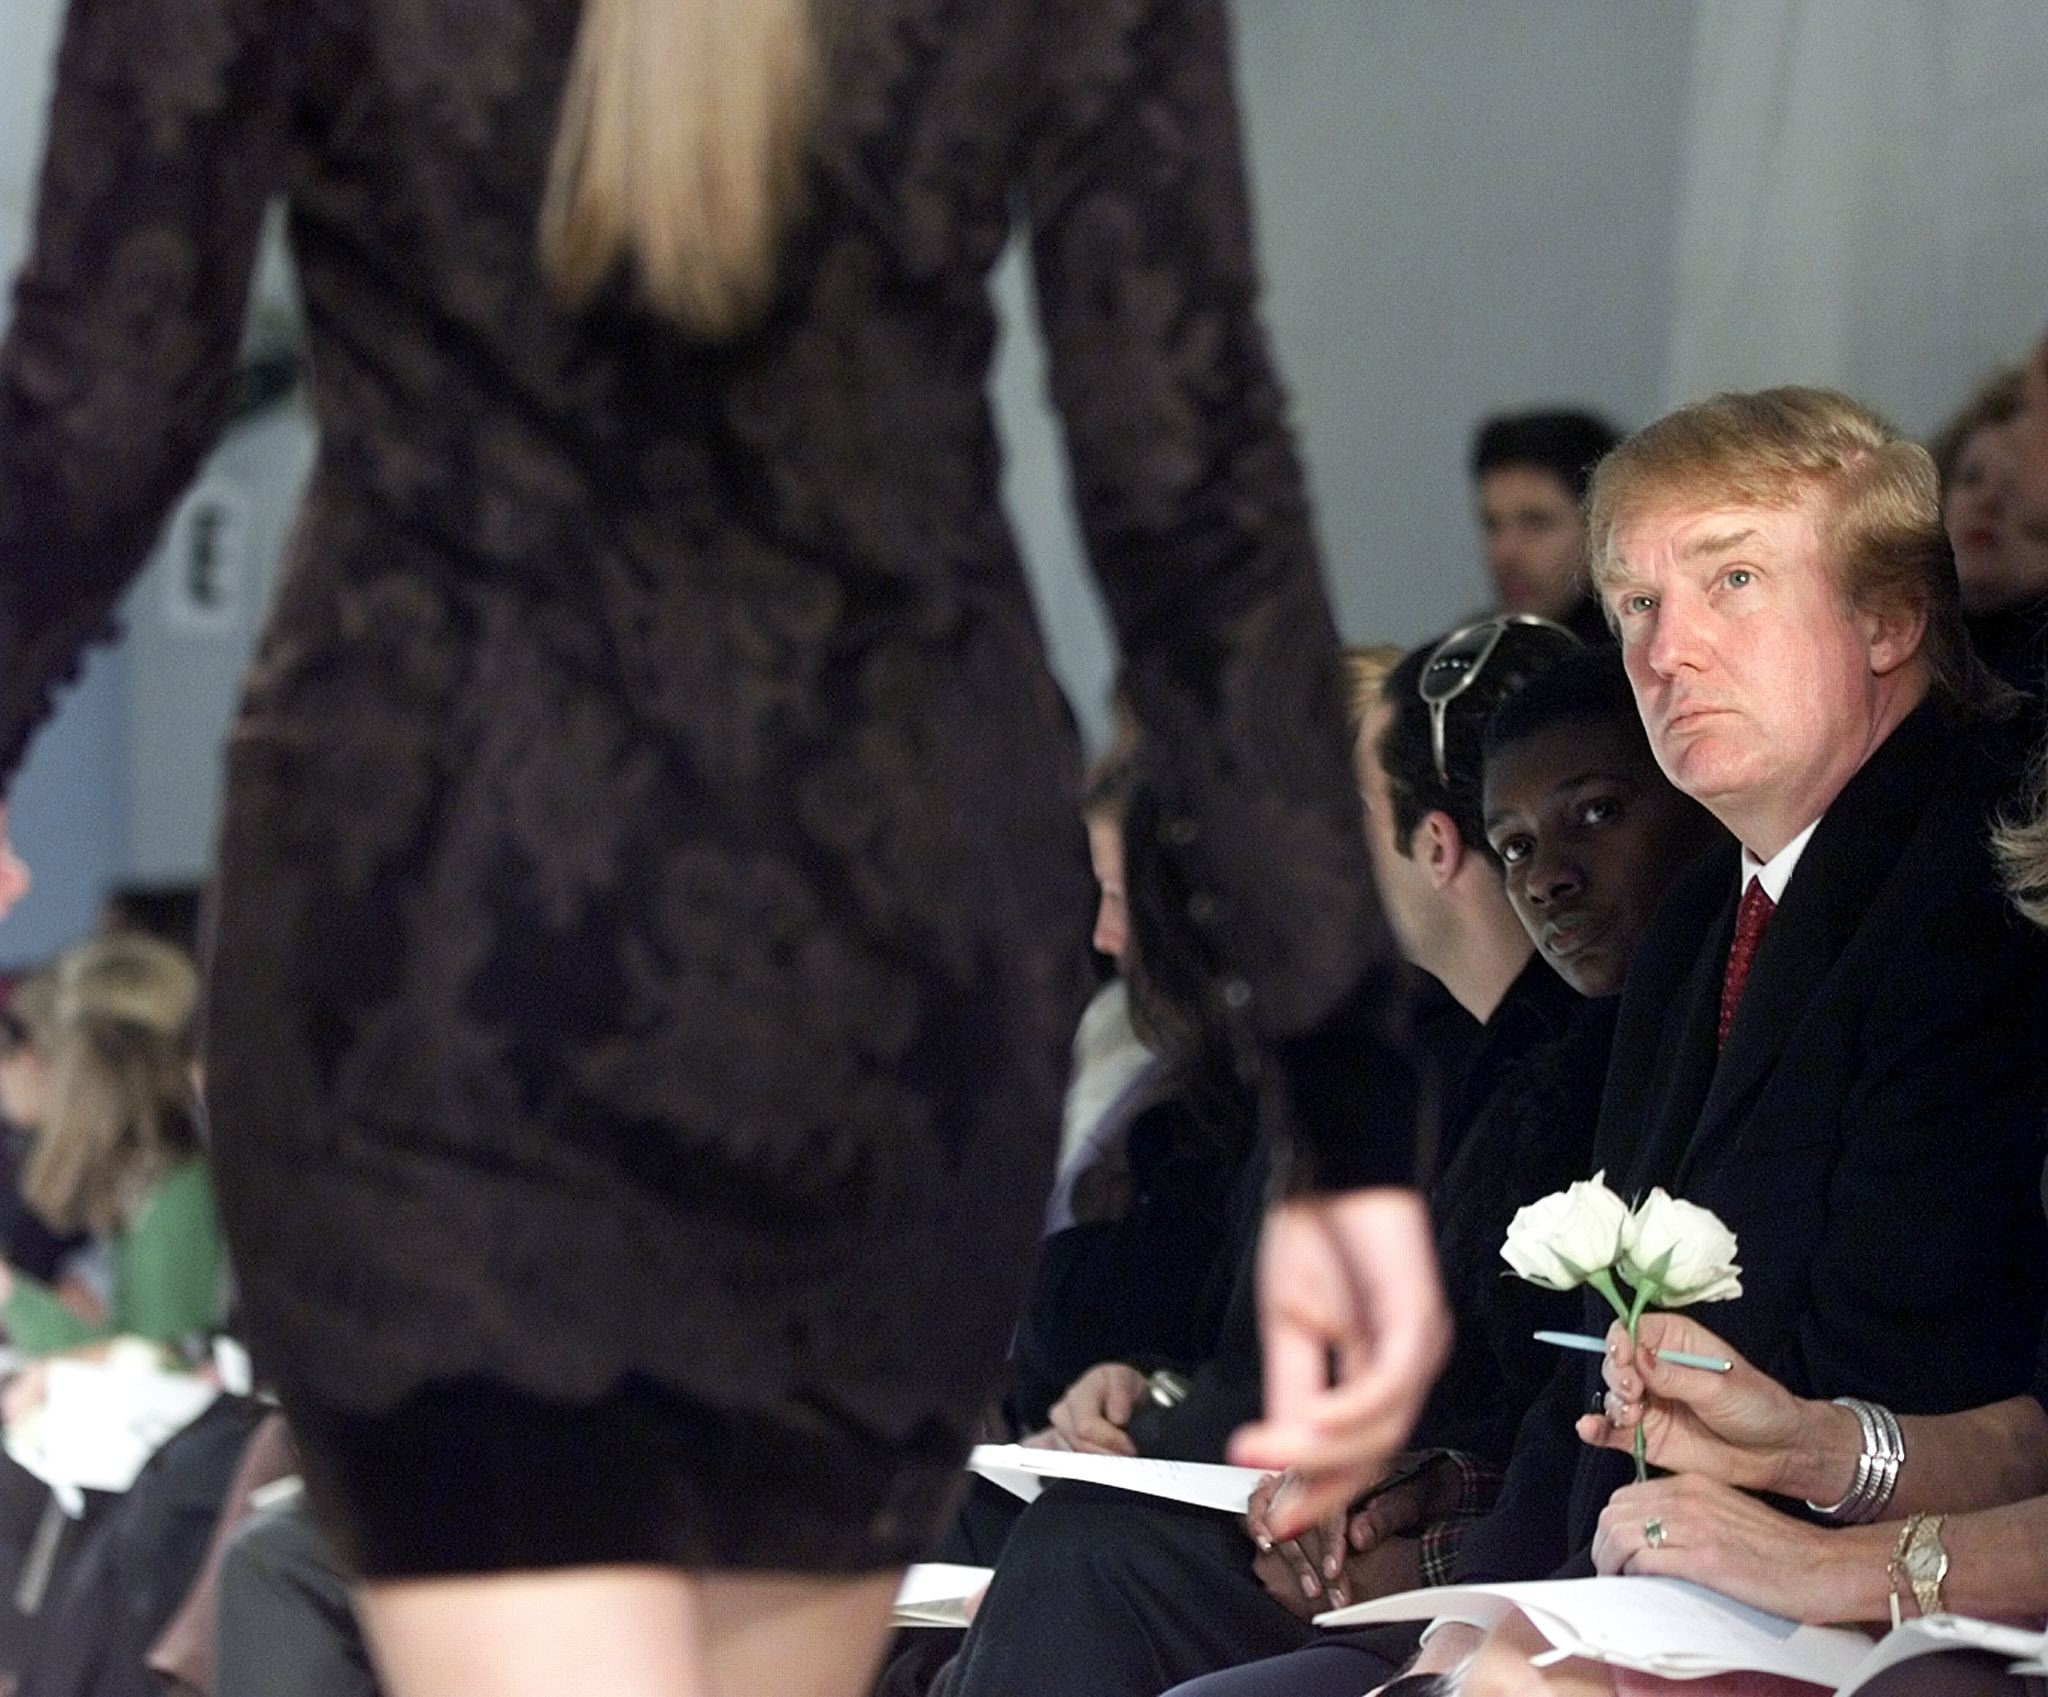 Donald Trump at Fashion Week